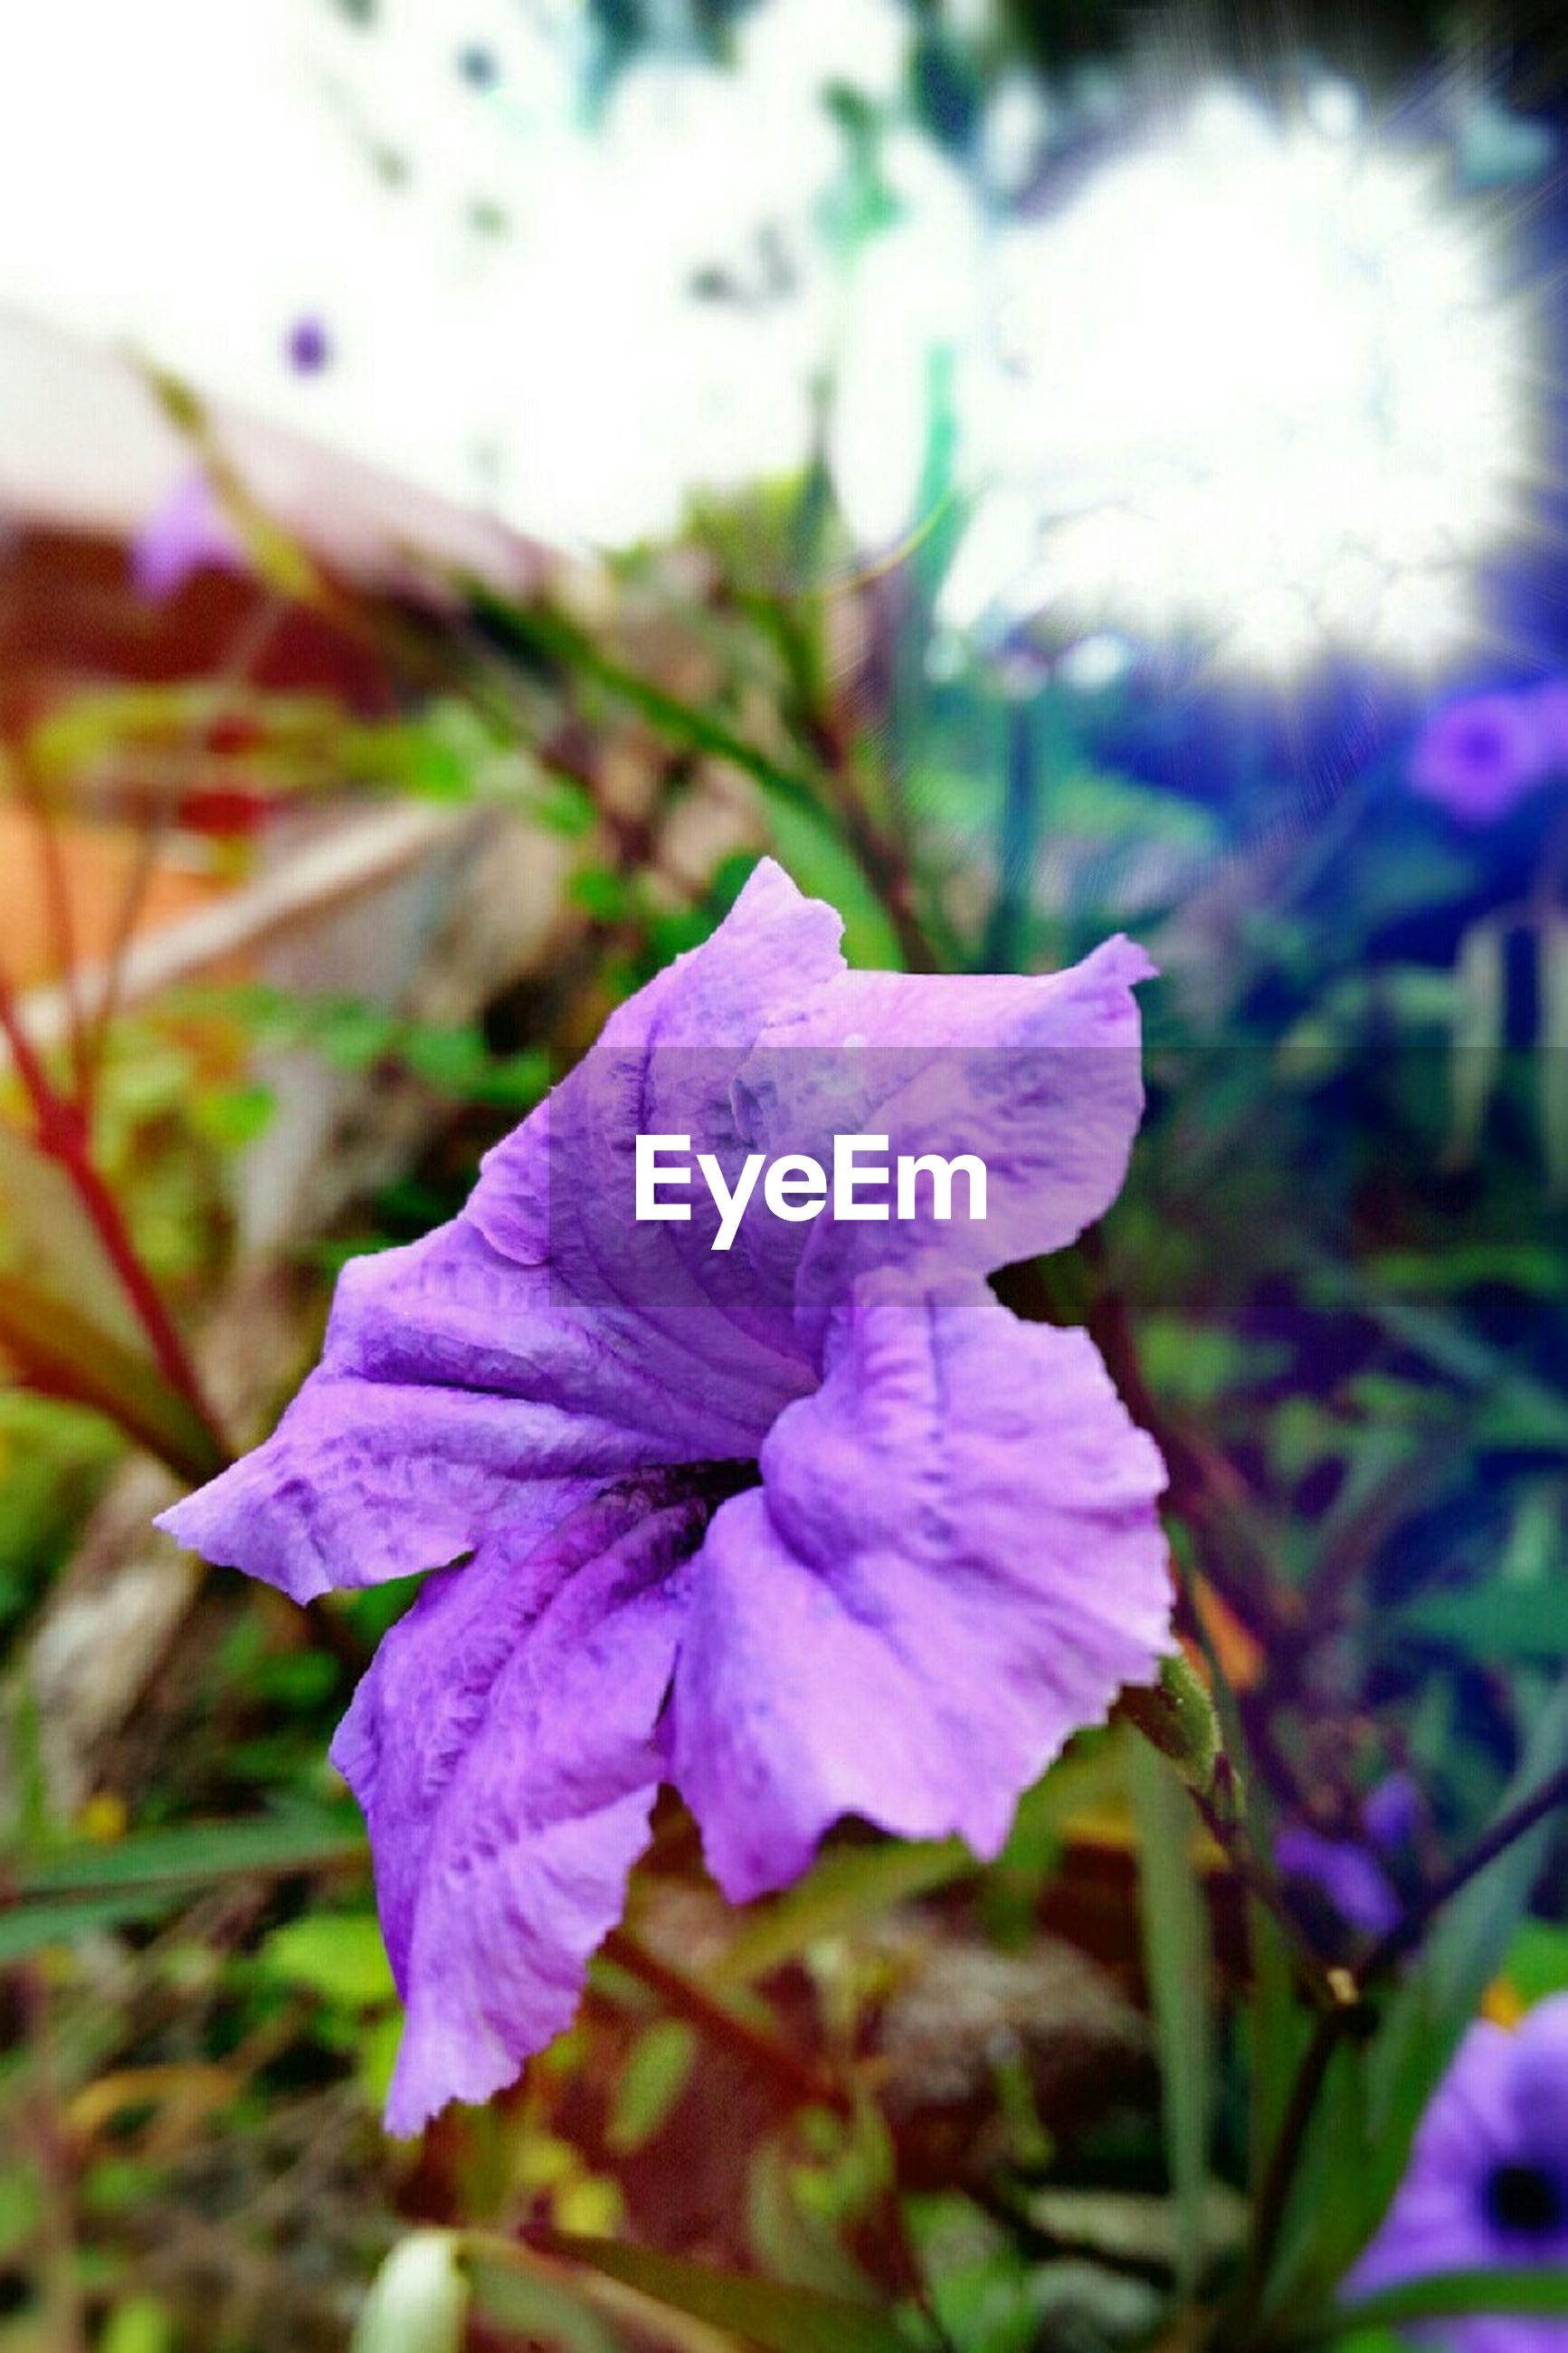 flower, petal, freshness, flower head, fragility, purple, growth, beauty in nature, close-up, focus on foreground, blooming, plant, nature, in bloom, blossom, day, stem, selective focus, outdoors, no people, botany, blue, pollen, stamen, pink color, tranquility, softness